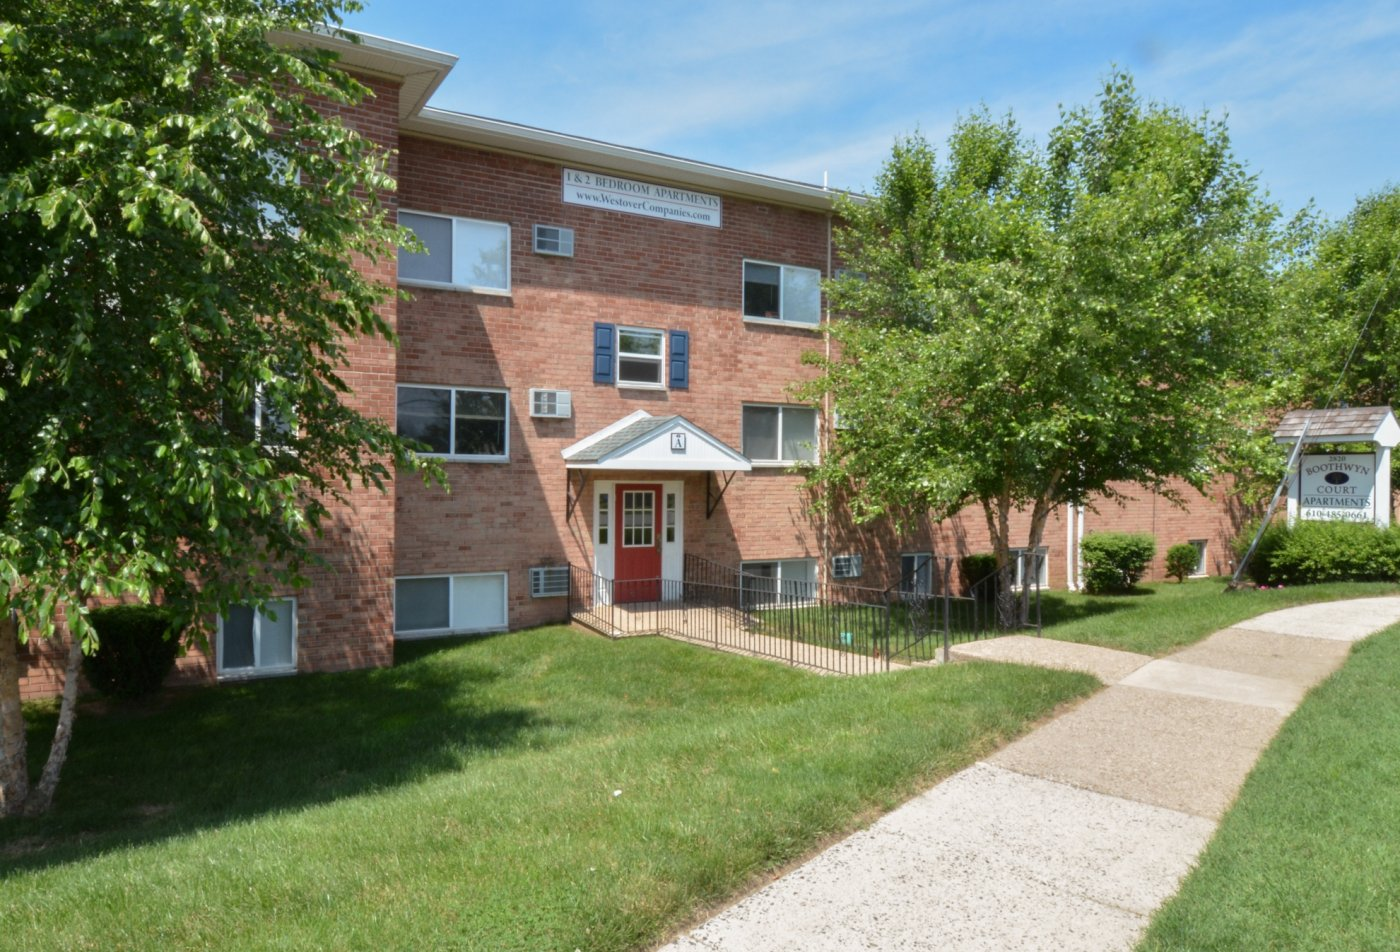 Apartments for rent in Boothwyn, PA   Boothwyn Court Apartments